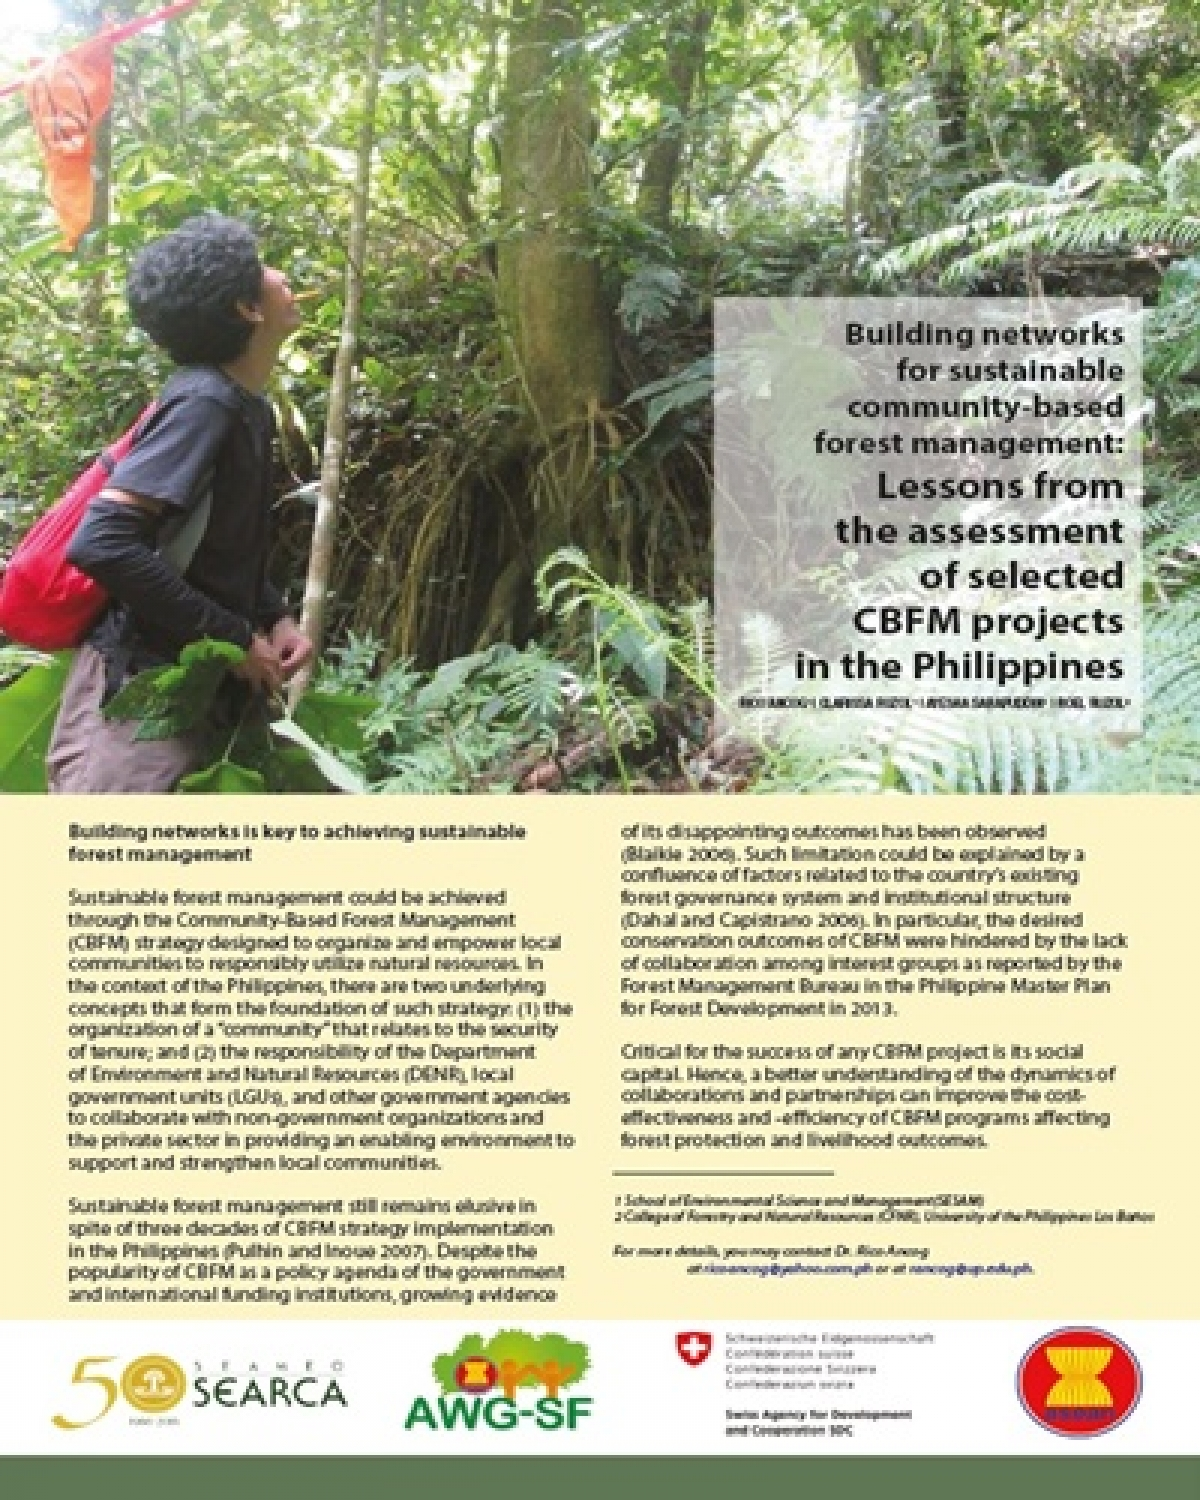 Building networks for sustainable community-based forest